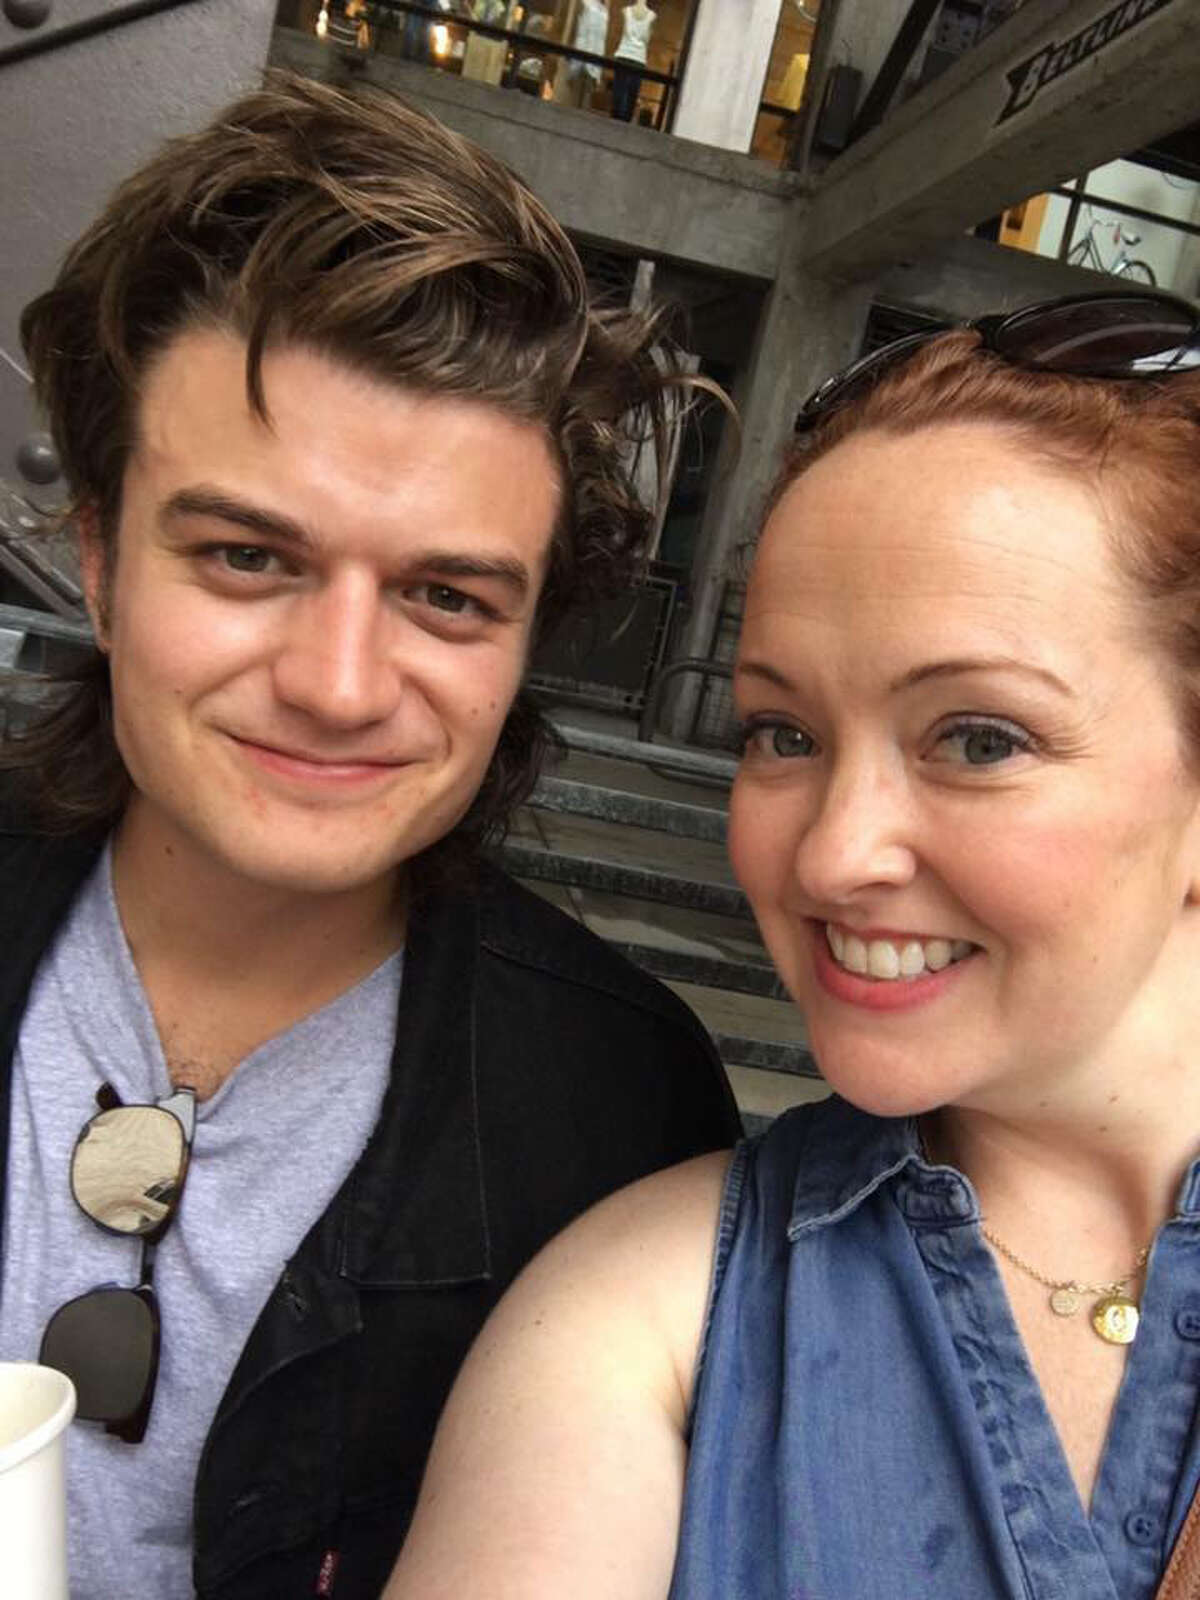 2. I have never watched Stranger Things, don't know much about it and really have no interest in watching it. However, I met star Joe Keery, he was really nice and totally up for taking a selfie with me even though I admitted I had no idea who he was.